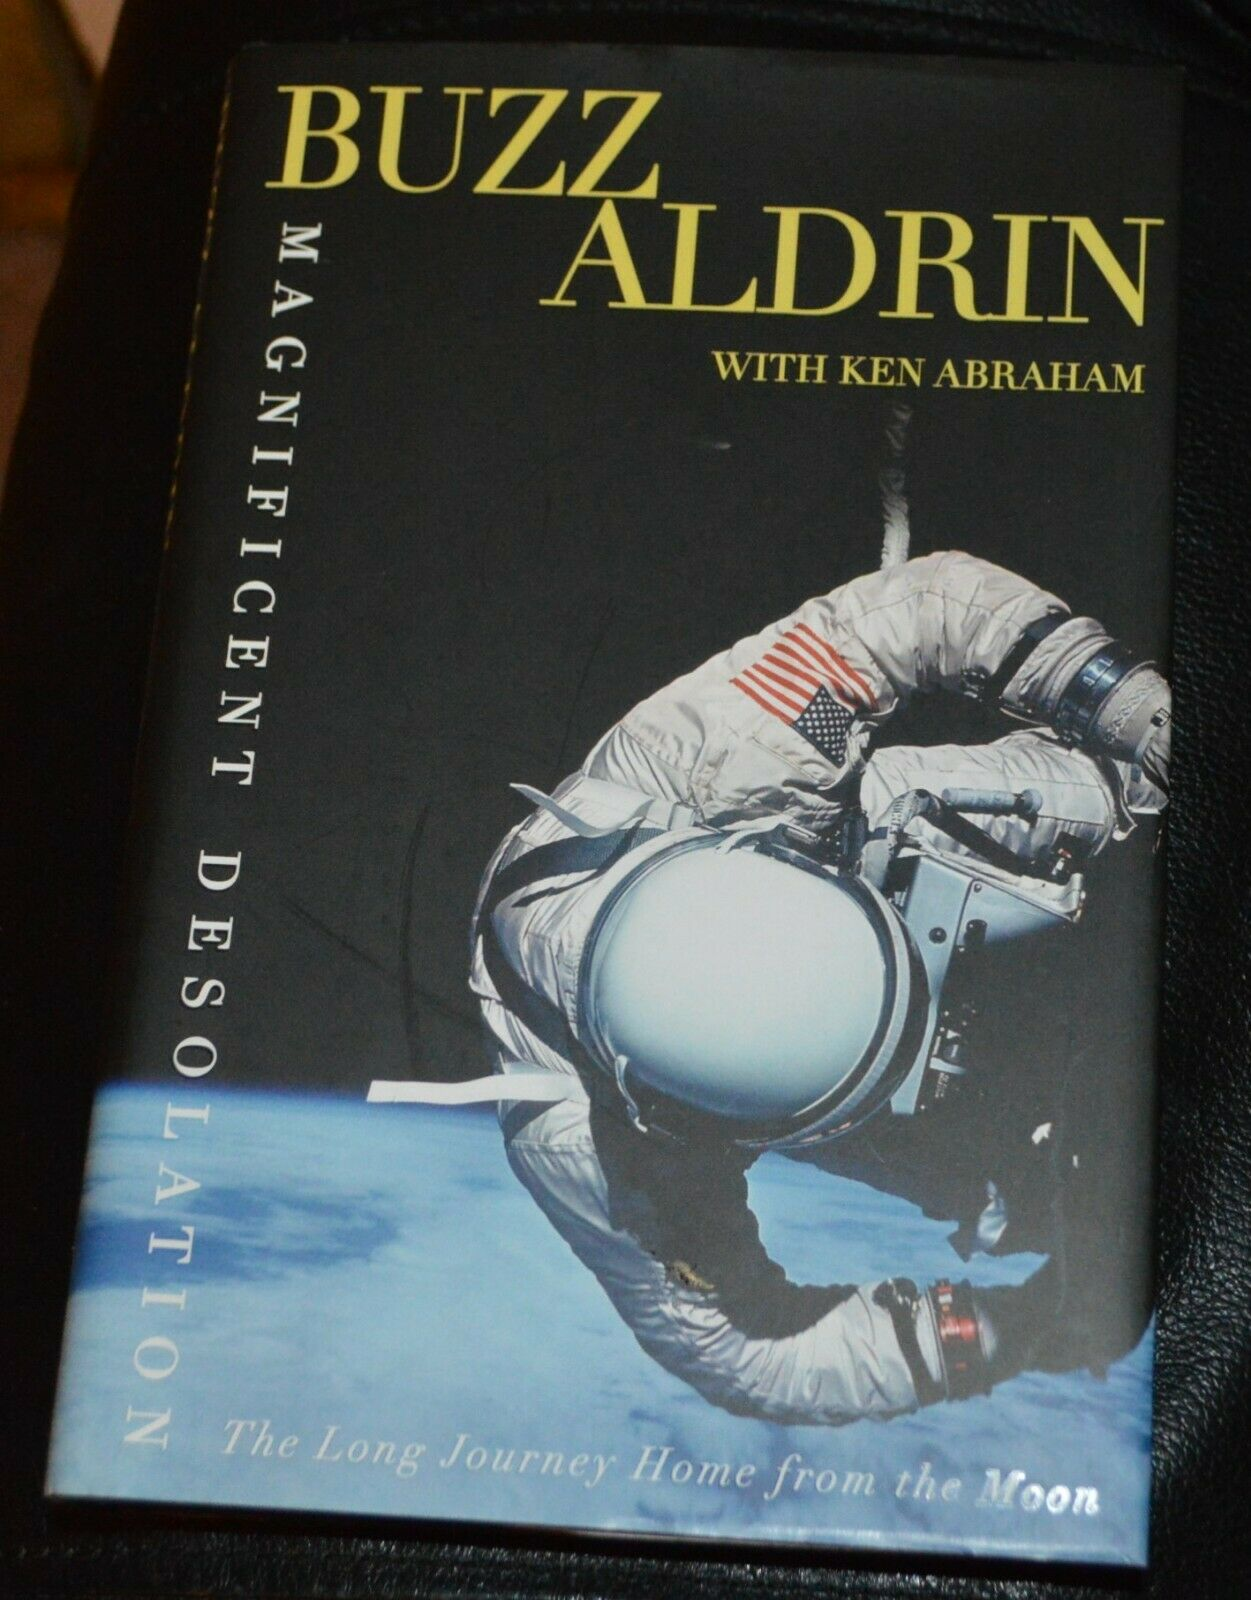 s l1600 - Buzz Aldrin Autographed Signed Hard Cover Book Apollo 11 Astronaut NASA Space